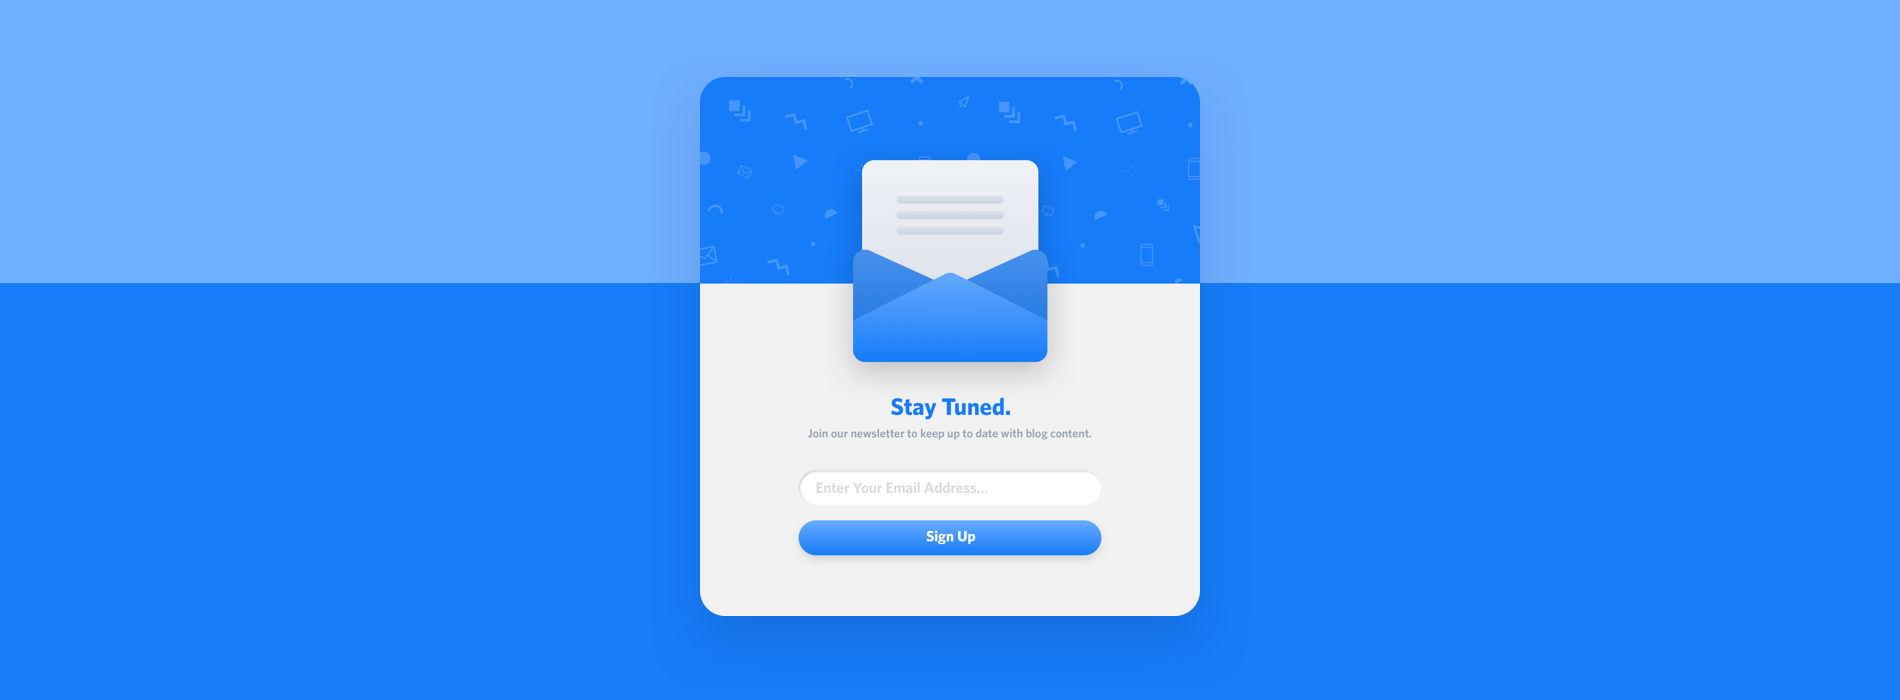 Why Will People Give You Their Email Address?